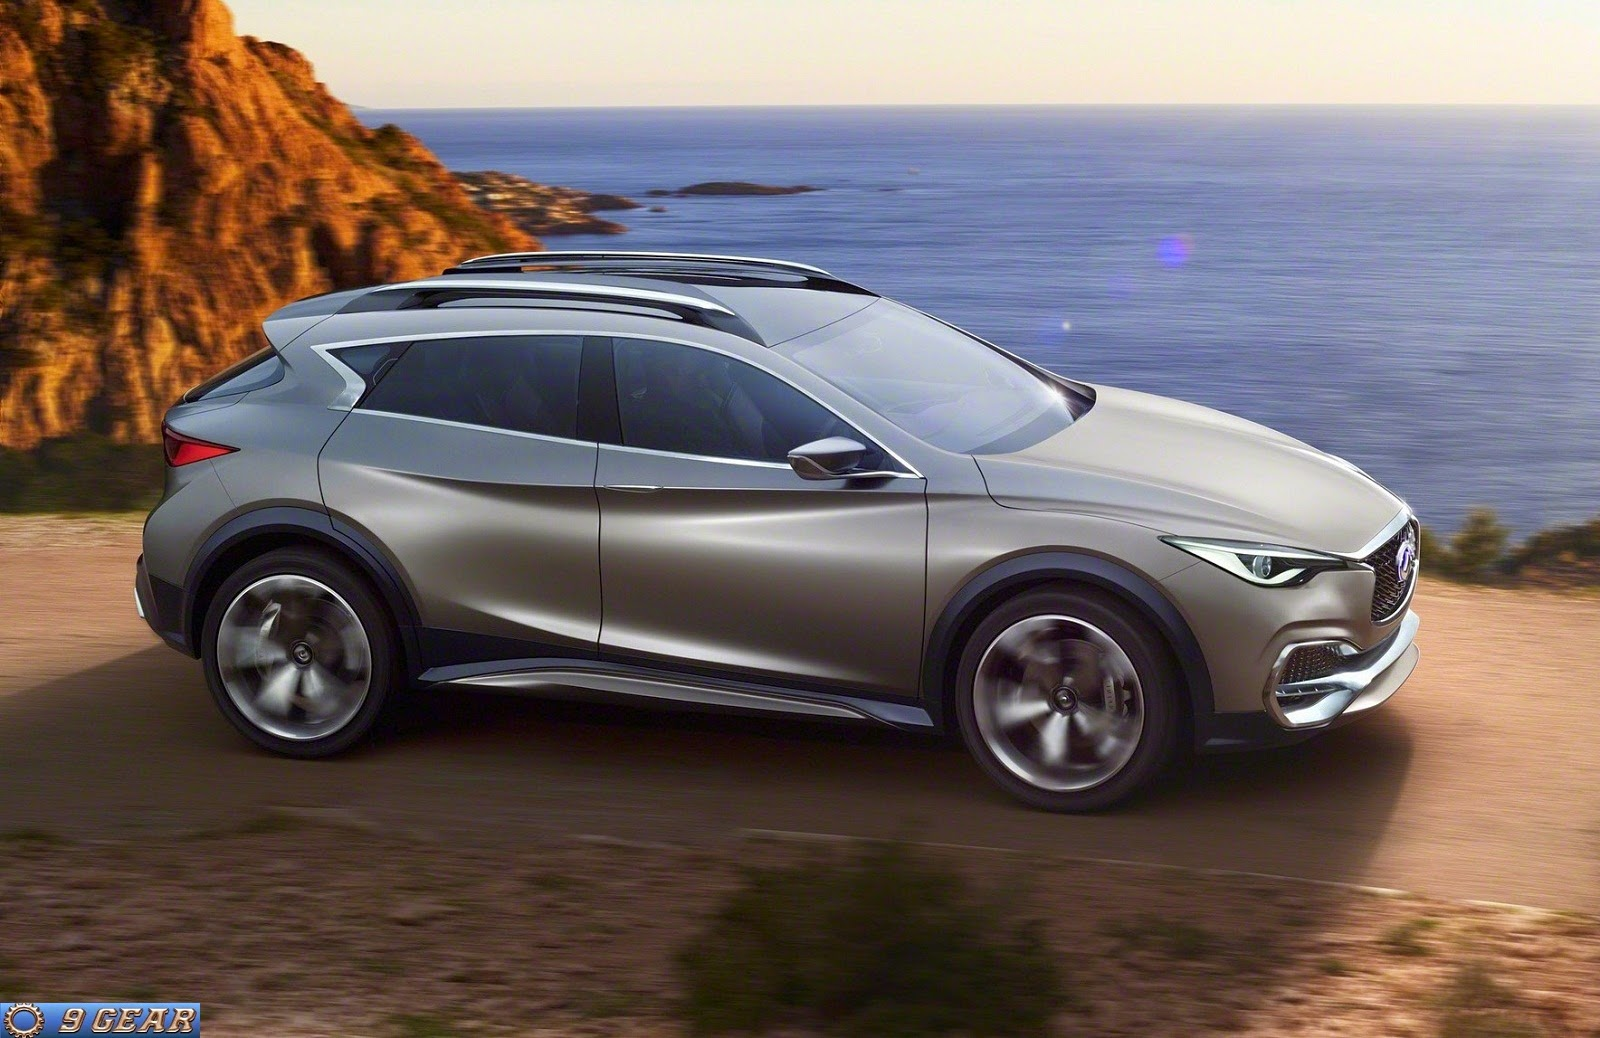 premium compact crossover infiniti qx30 concept car reviews new car pictures for 2018 2019. Black Bedroom Furniture Sets. Home Design Ideas